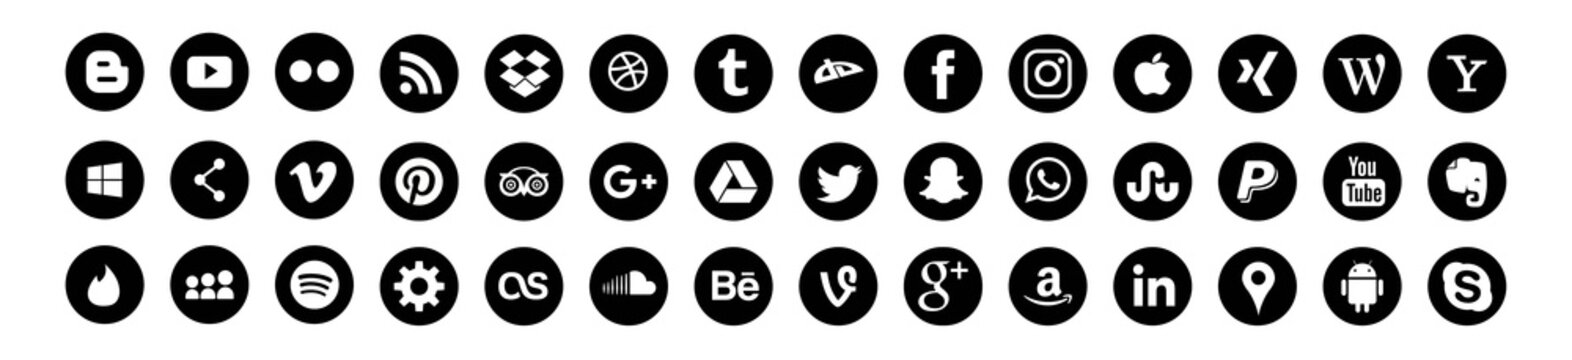 Set of popular social media logos: Instagram, Facebook, Twitter, Youtube, WhatsApp, LinkedIn, Pinterest, Blogger and others